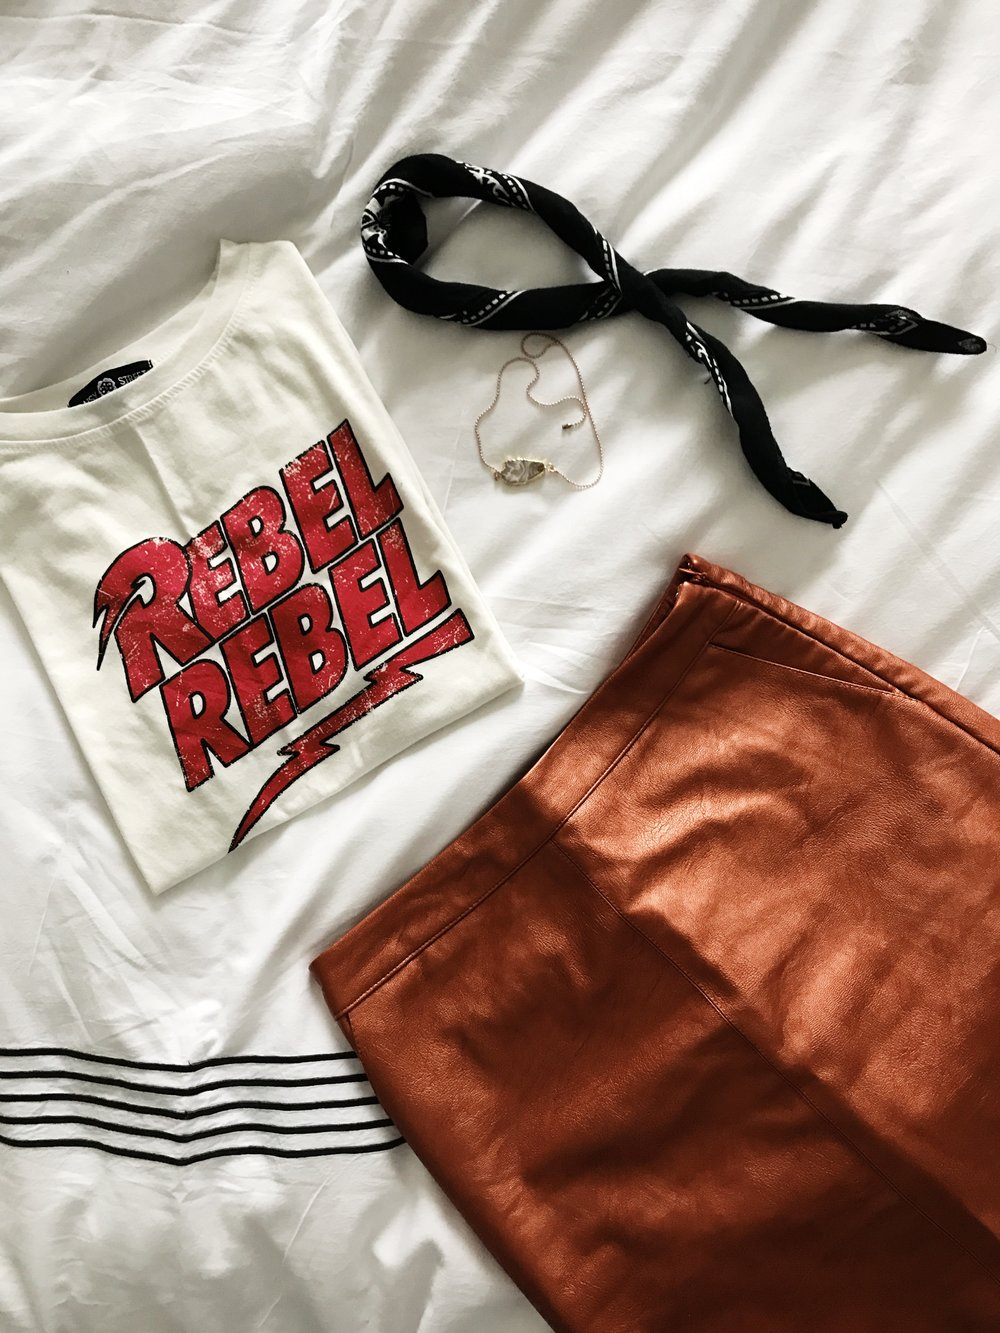 Rebel Rebel T Shirt   |   Metallic Skirt  (on sale $39.90)  |  Necklace | Red Dog Beads  |  Bandana